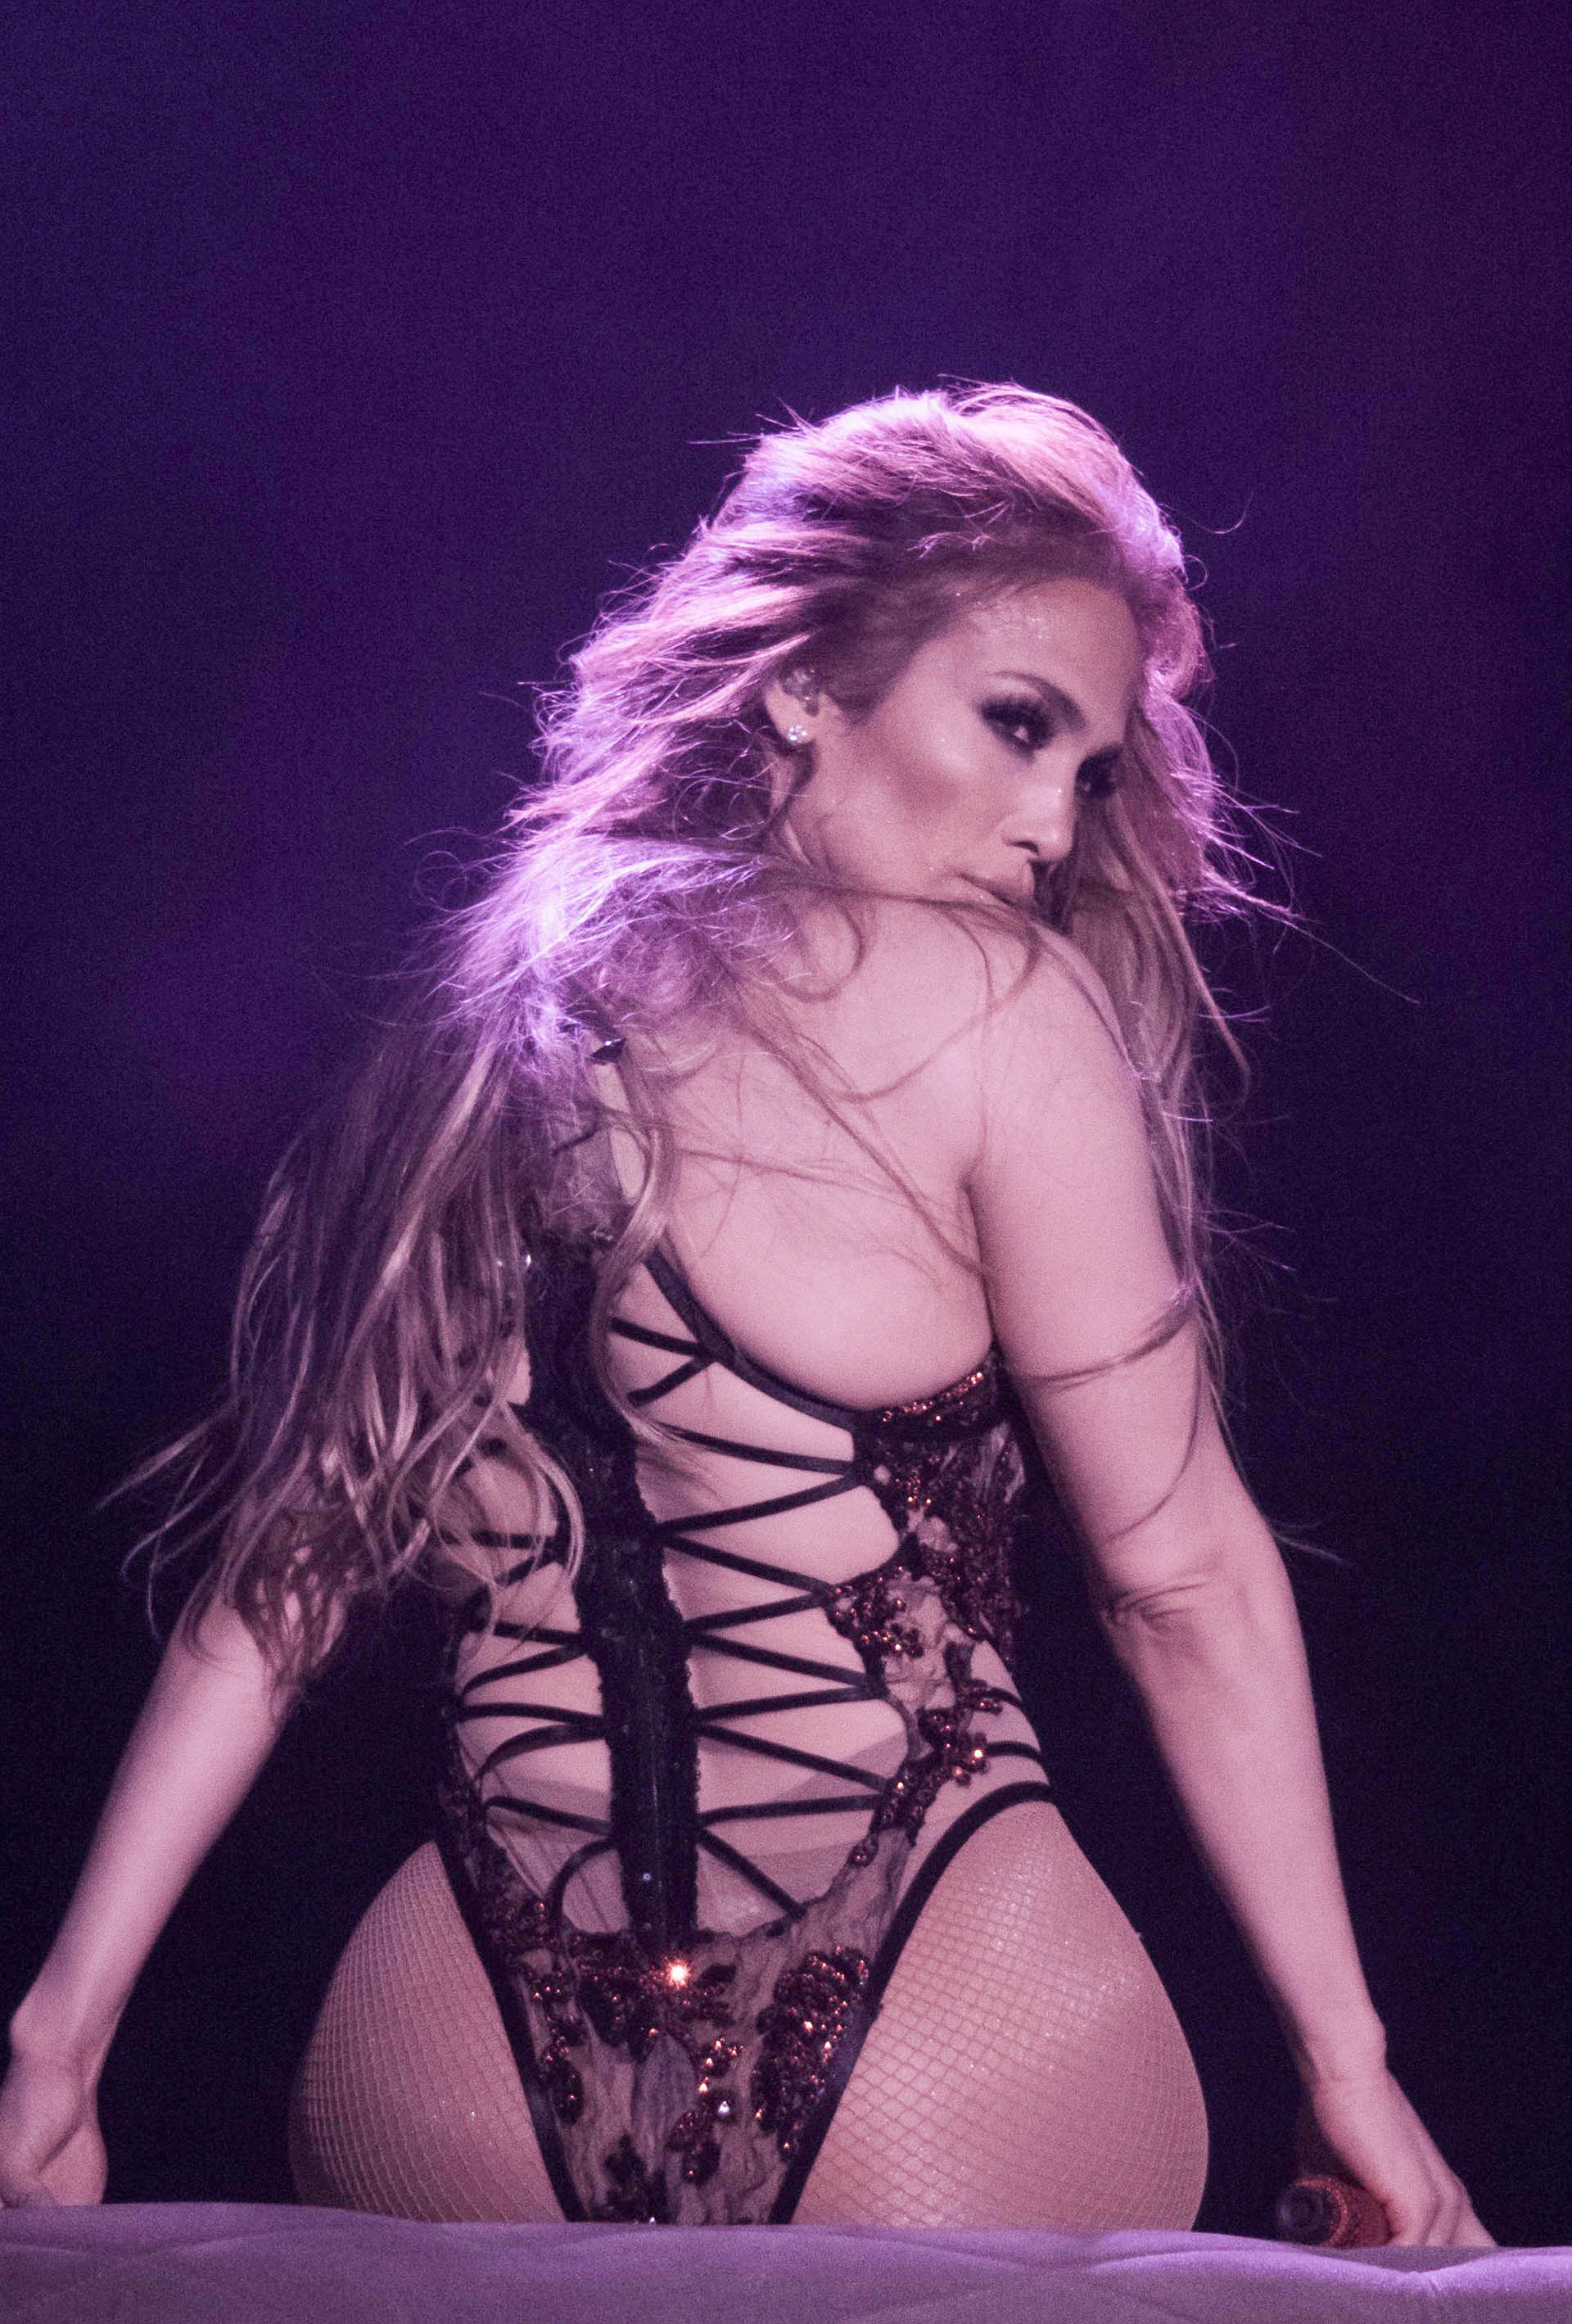 La cantante realizó un baile muy sensual sobre el escenario (Photo © 2018 Splash News/The Grosby Group)